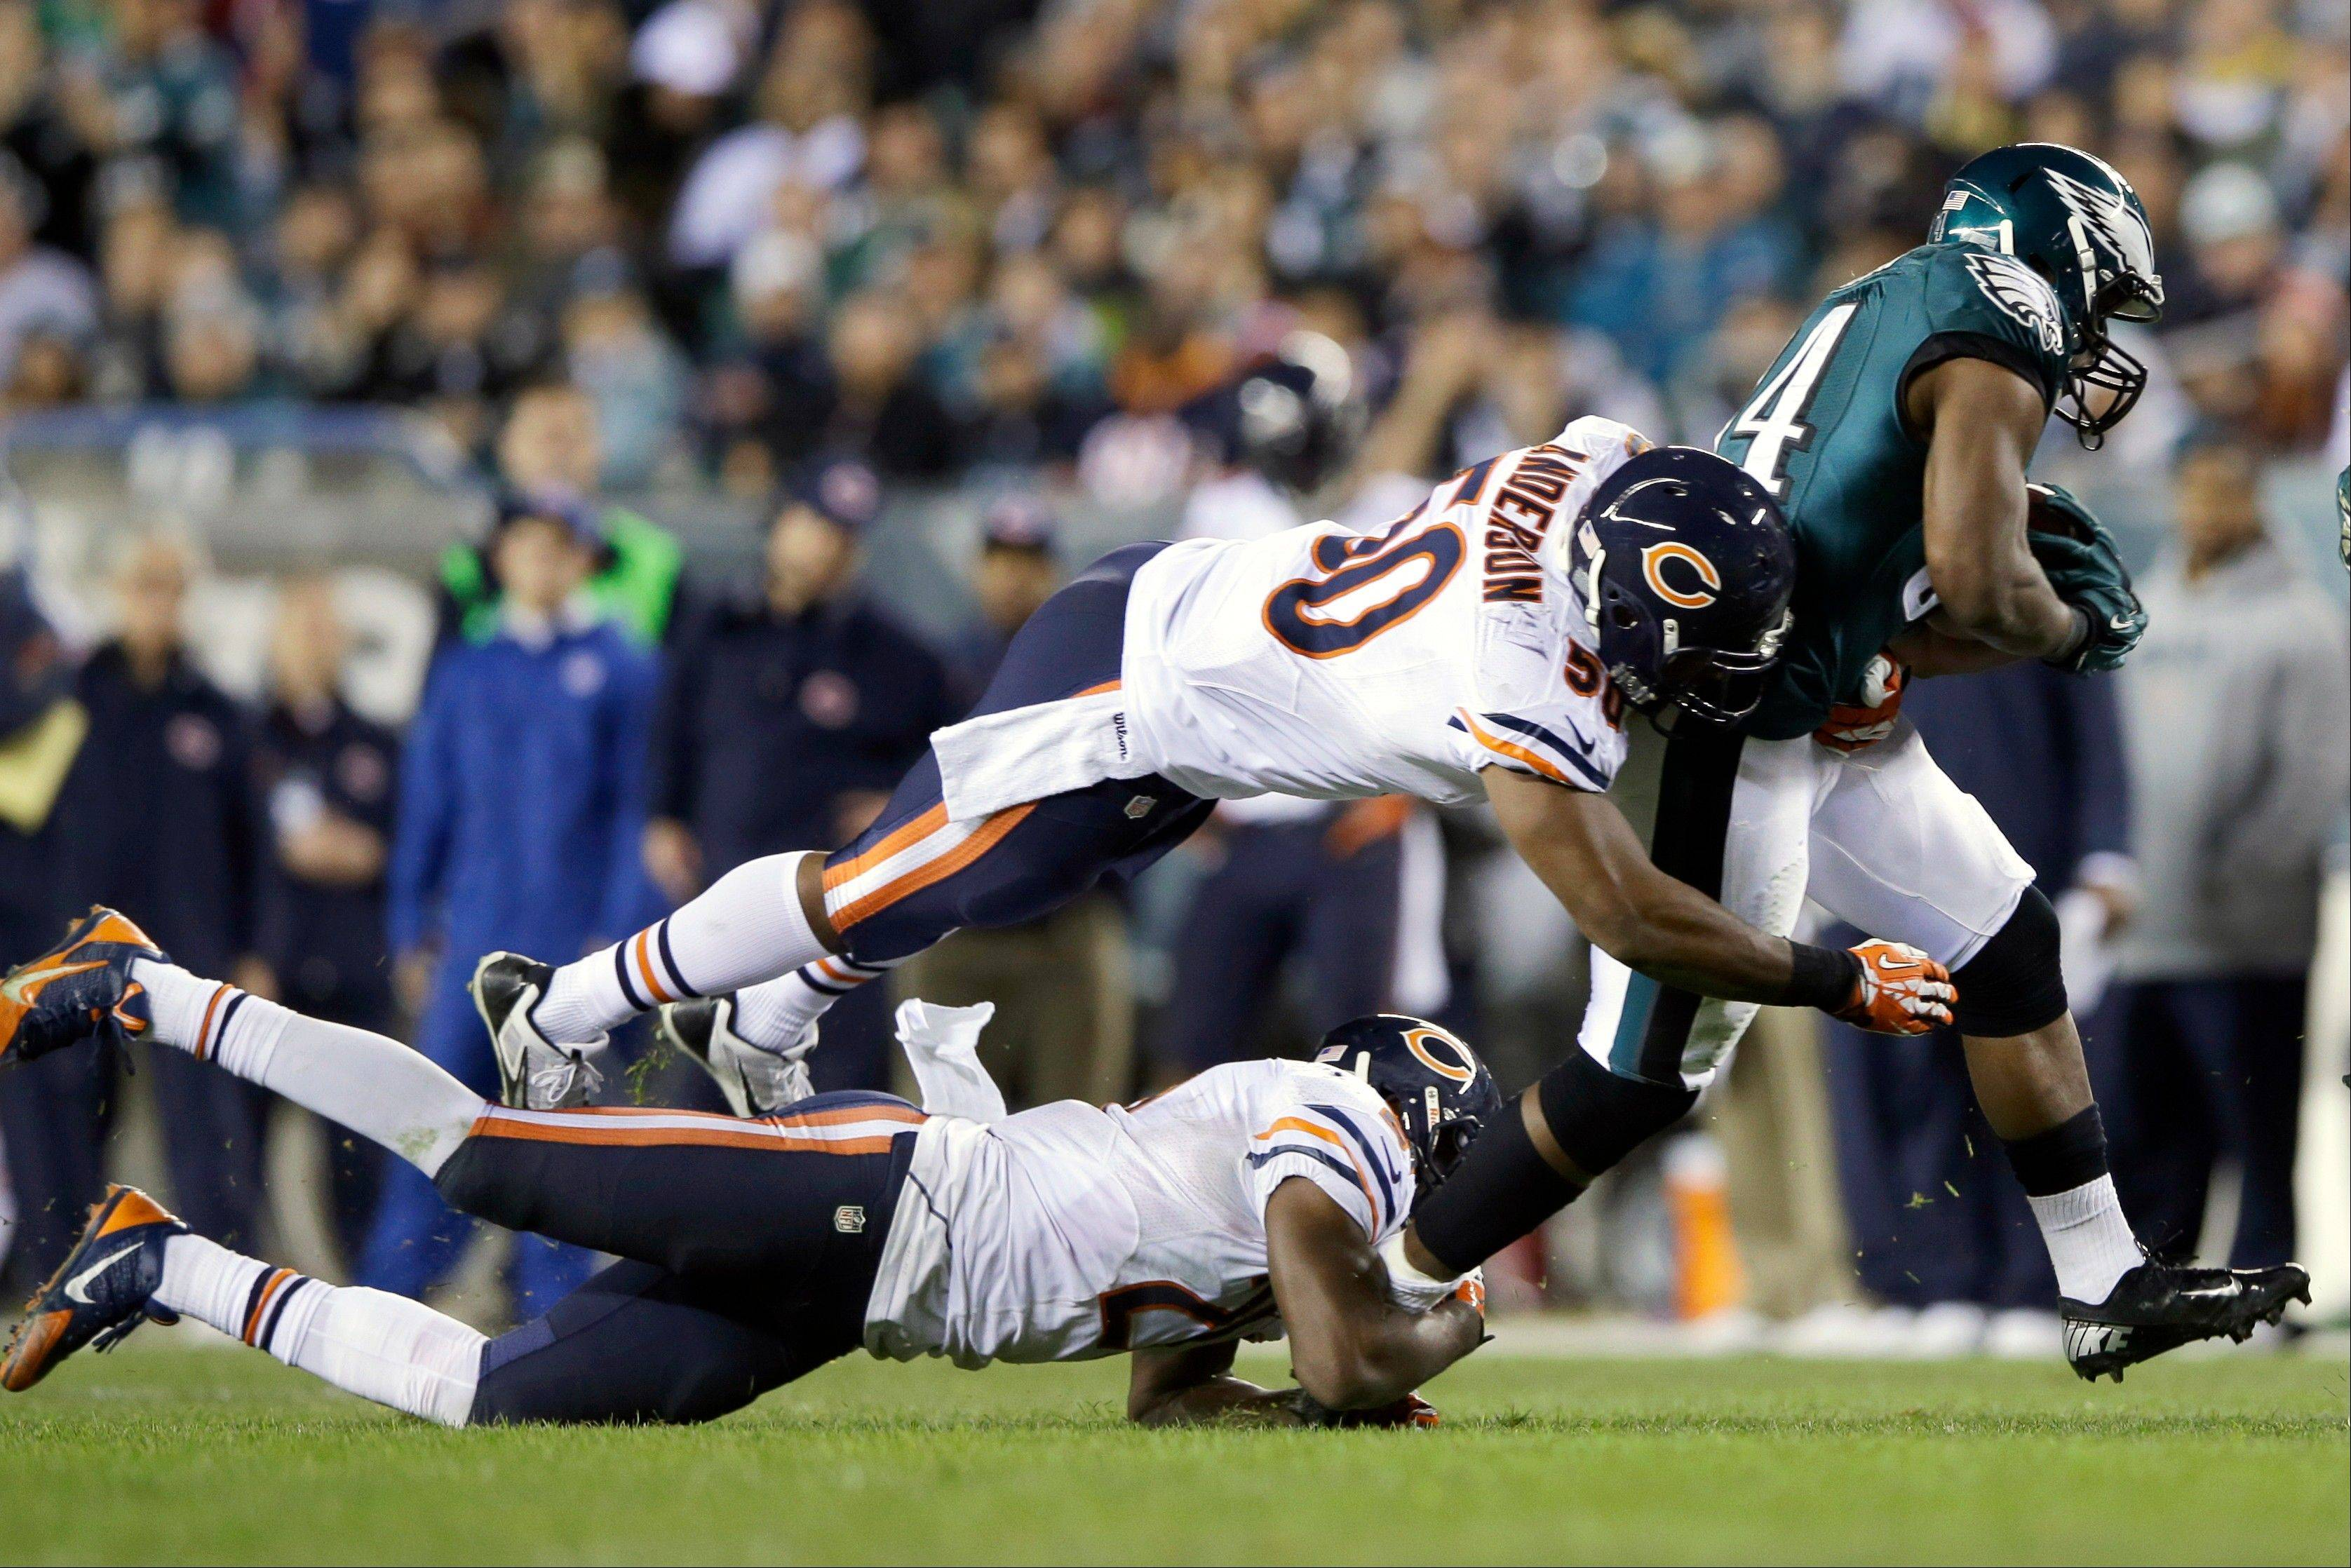 The Philadelphia Eagles� Bryce Brown, right, breaks free of Bears James Anderson, top left, and Roc Carmichael during the second half of an NFL football game, Sunday, Dec. 22, 2013, in Philadelphia.